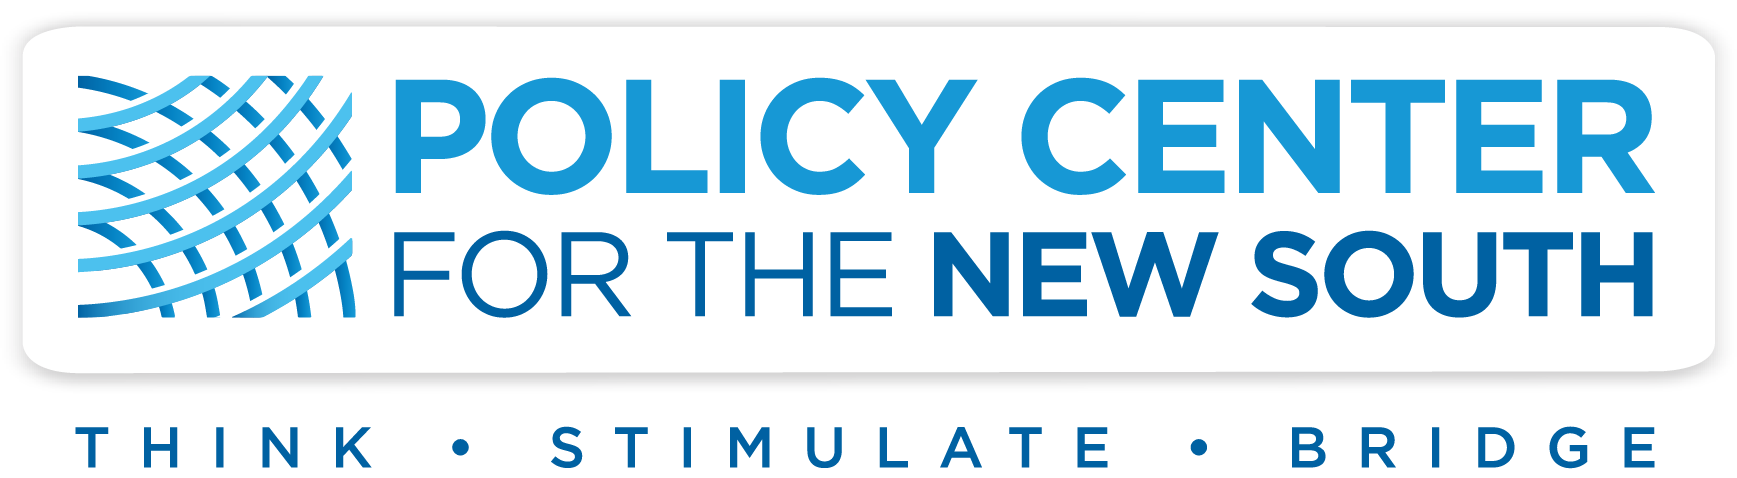 Policy Center for the New South logo